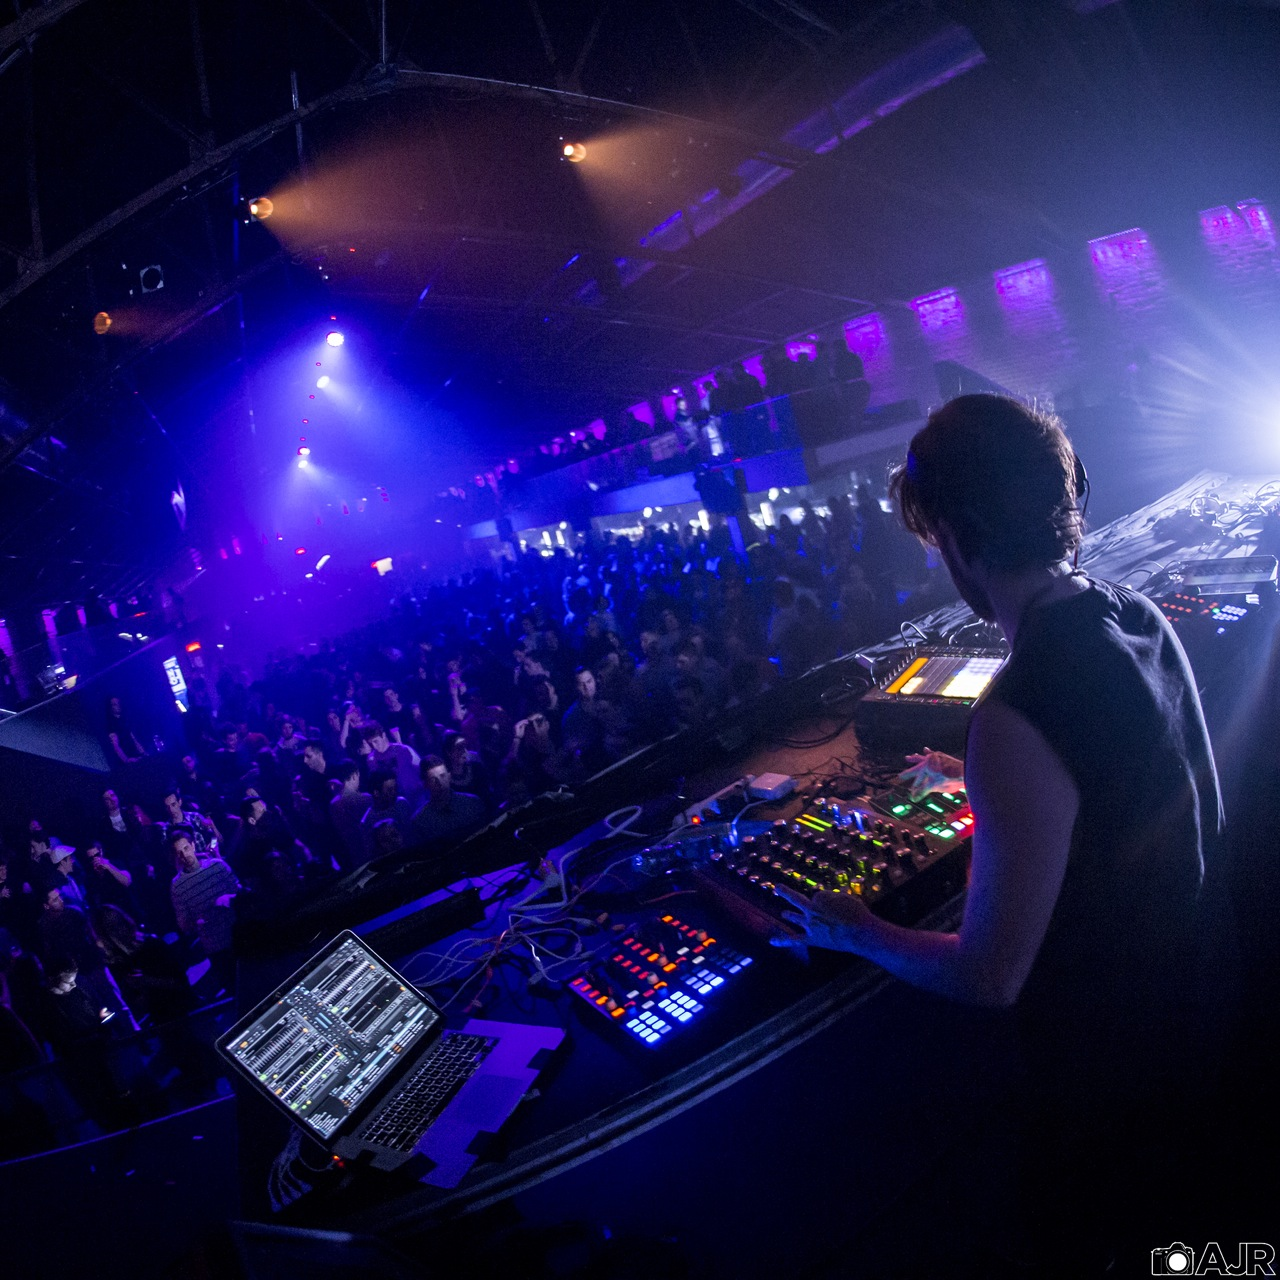 """DJ Ean Golden -   Professional Traktor DJ -   """"I only play a few sets per month and find myself spending 6 hours prepping for a single 2 hour set. Kado has cut that time down by at least half and made me excited to play out more."""""""